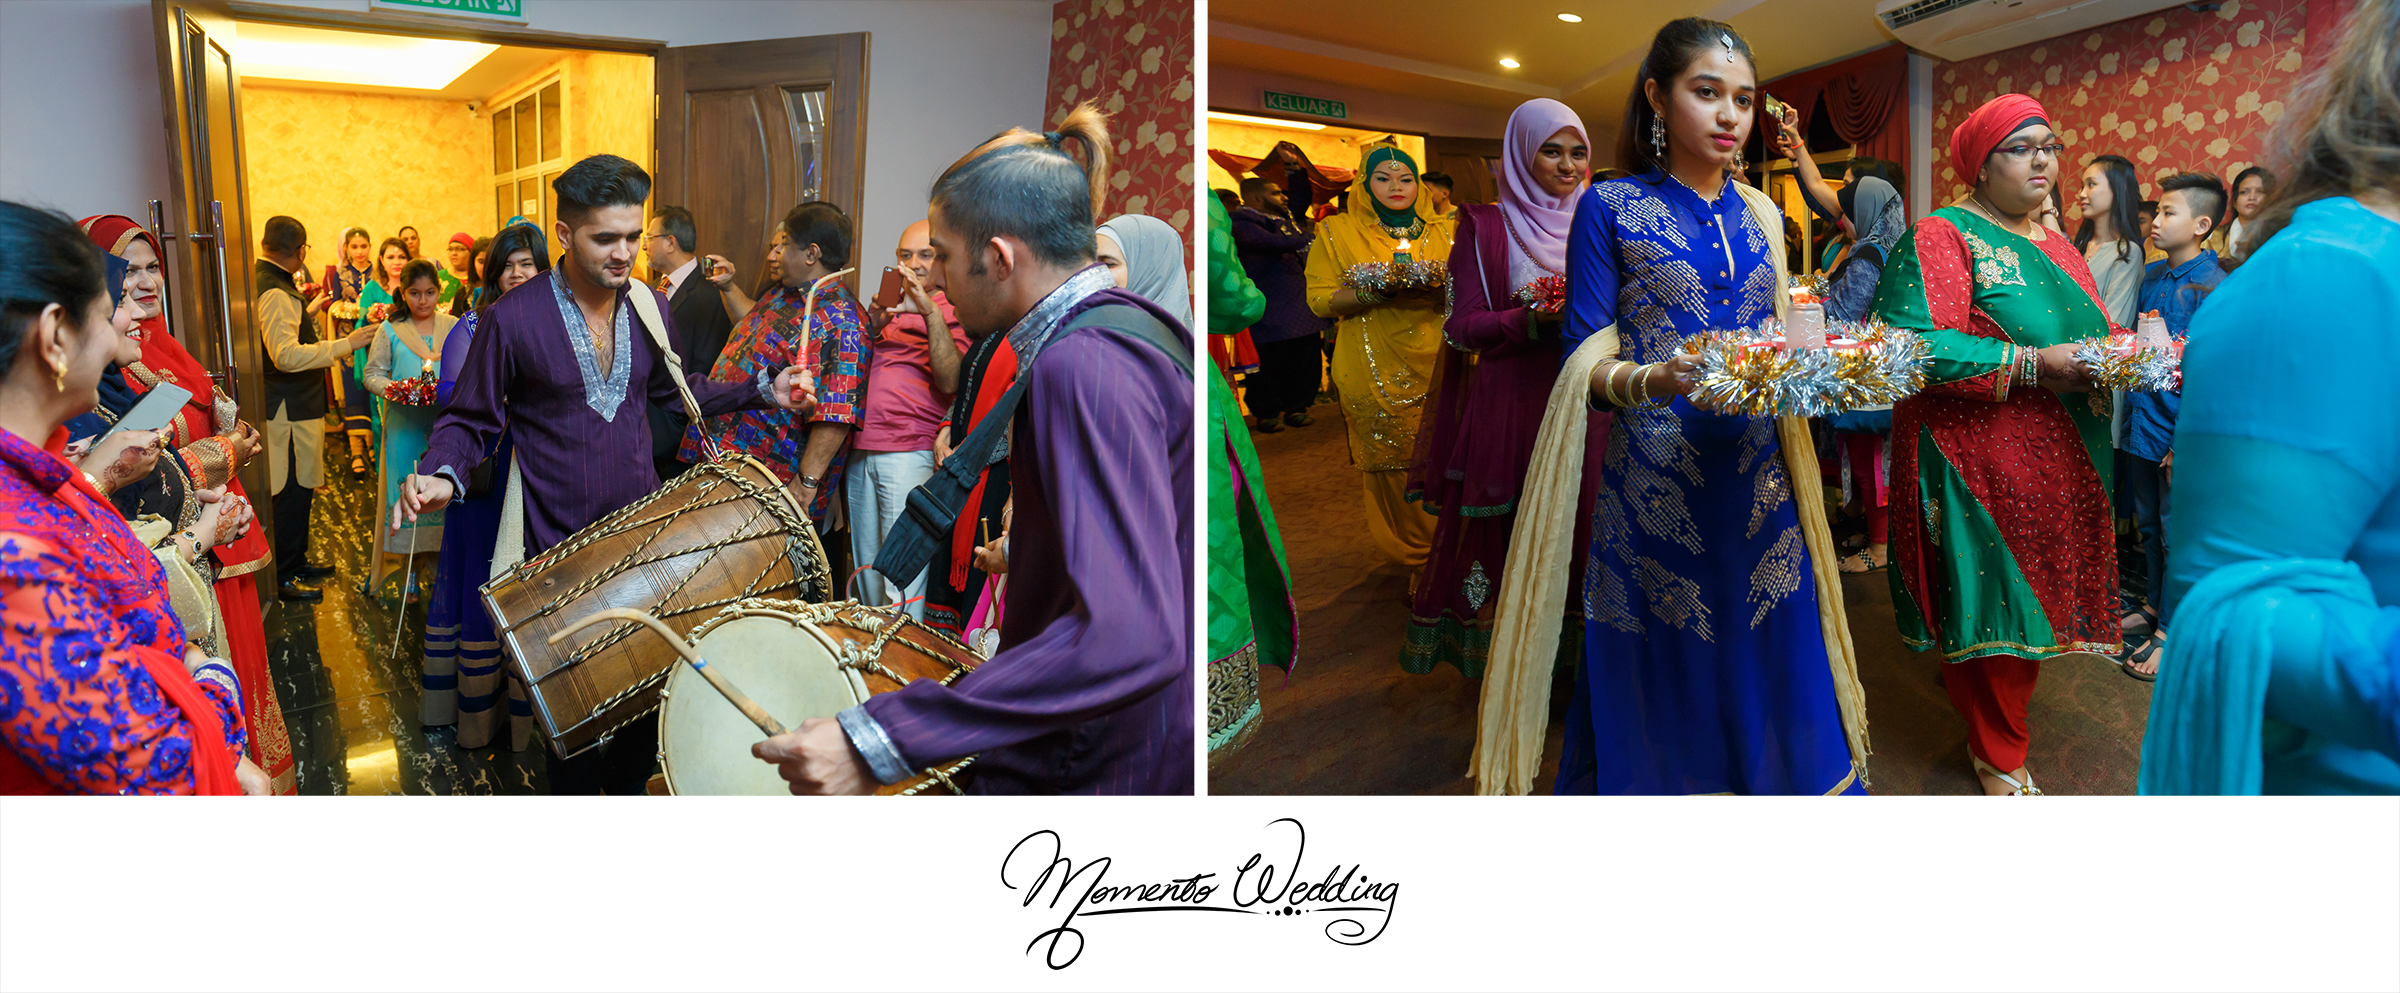 Mixed Culture Wedding in Malaysia_4331